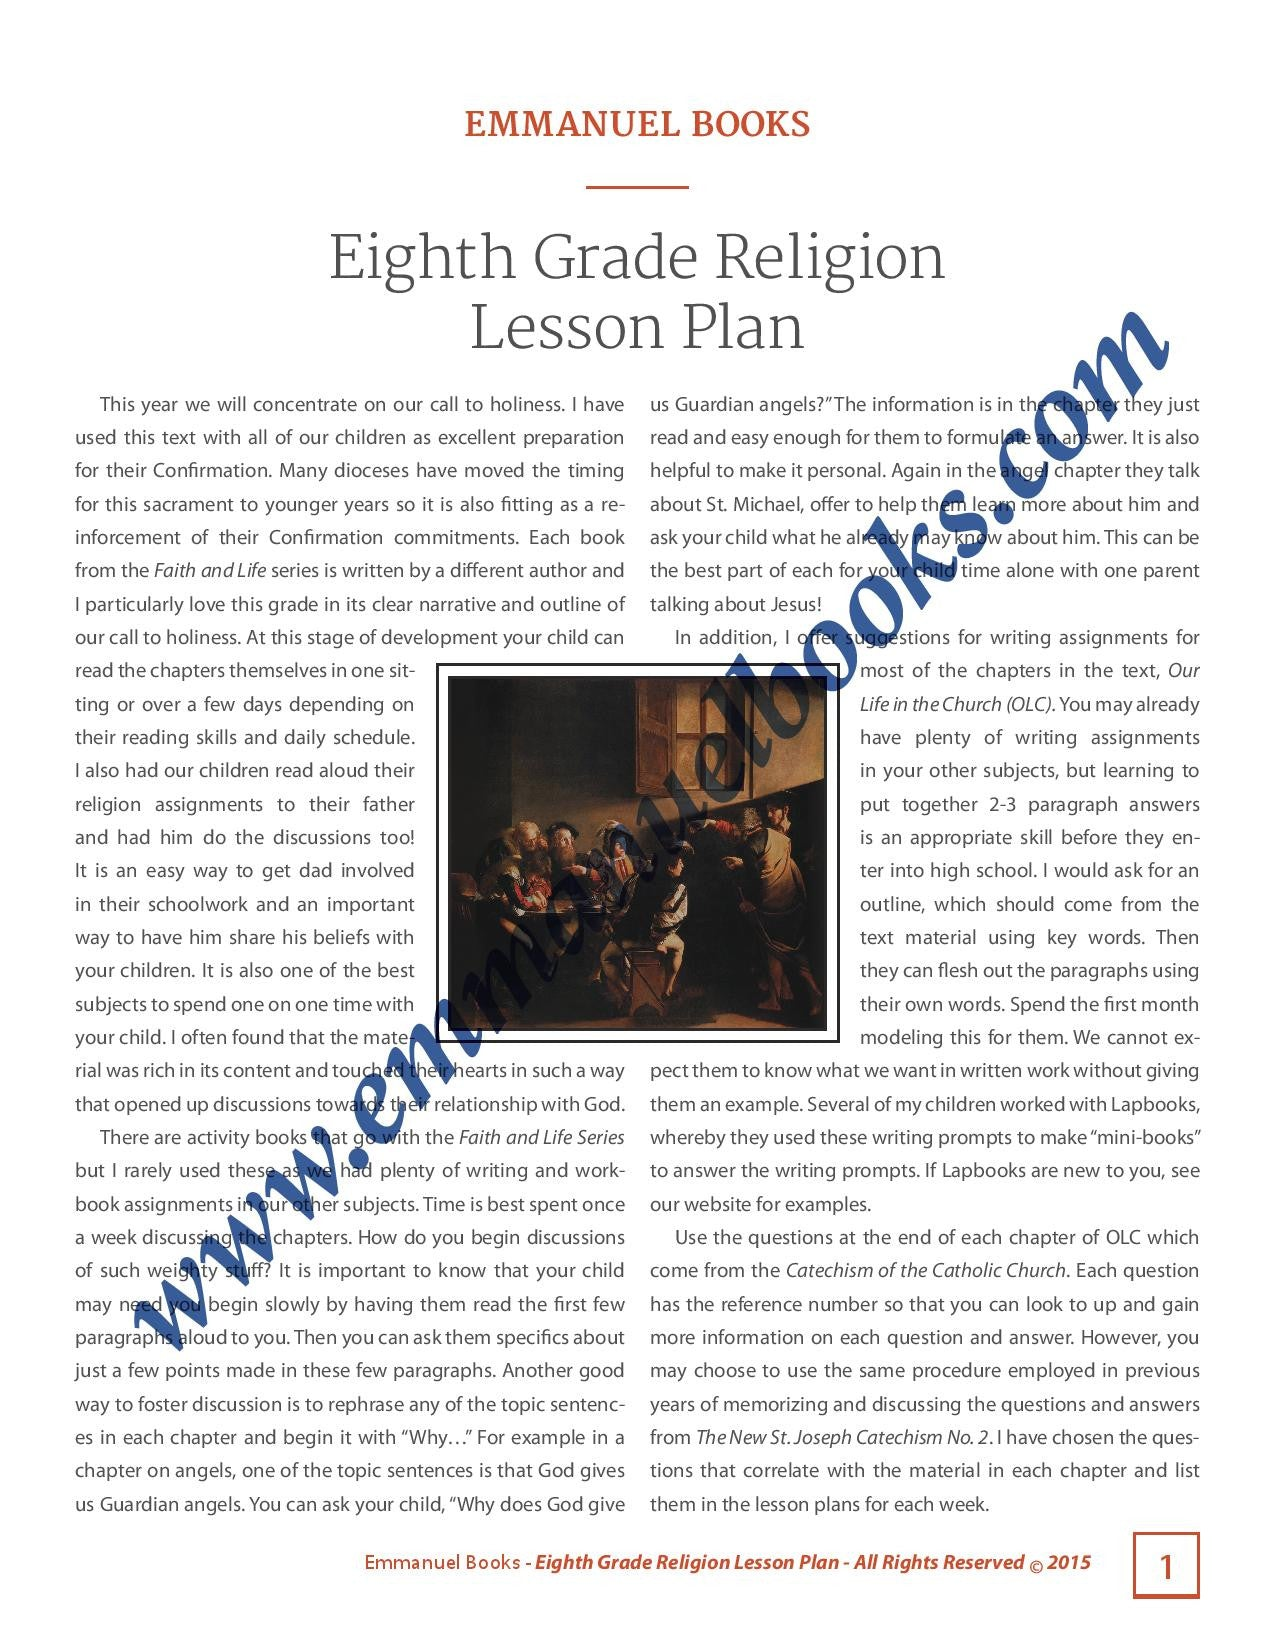 Emmanuel Books Eighth Grade Religion Lesson Plan